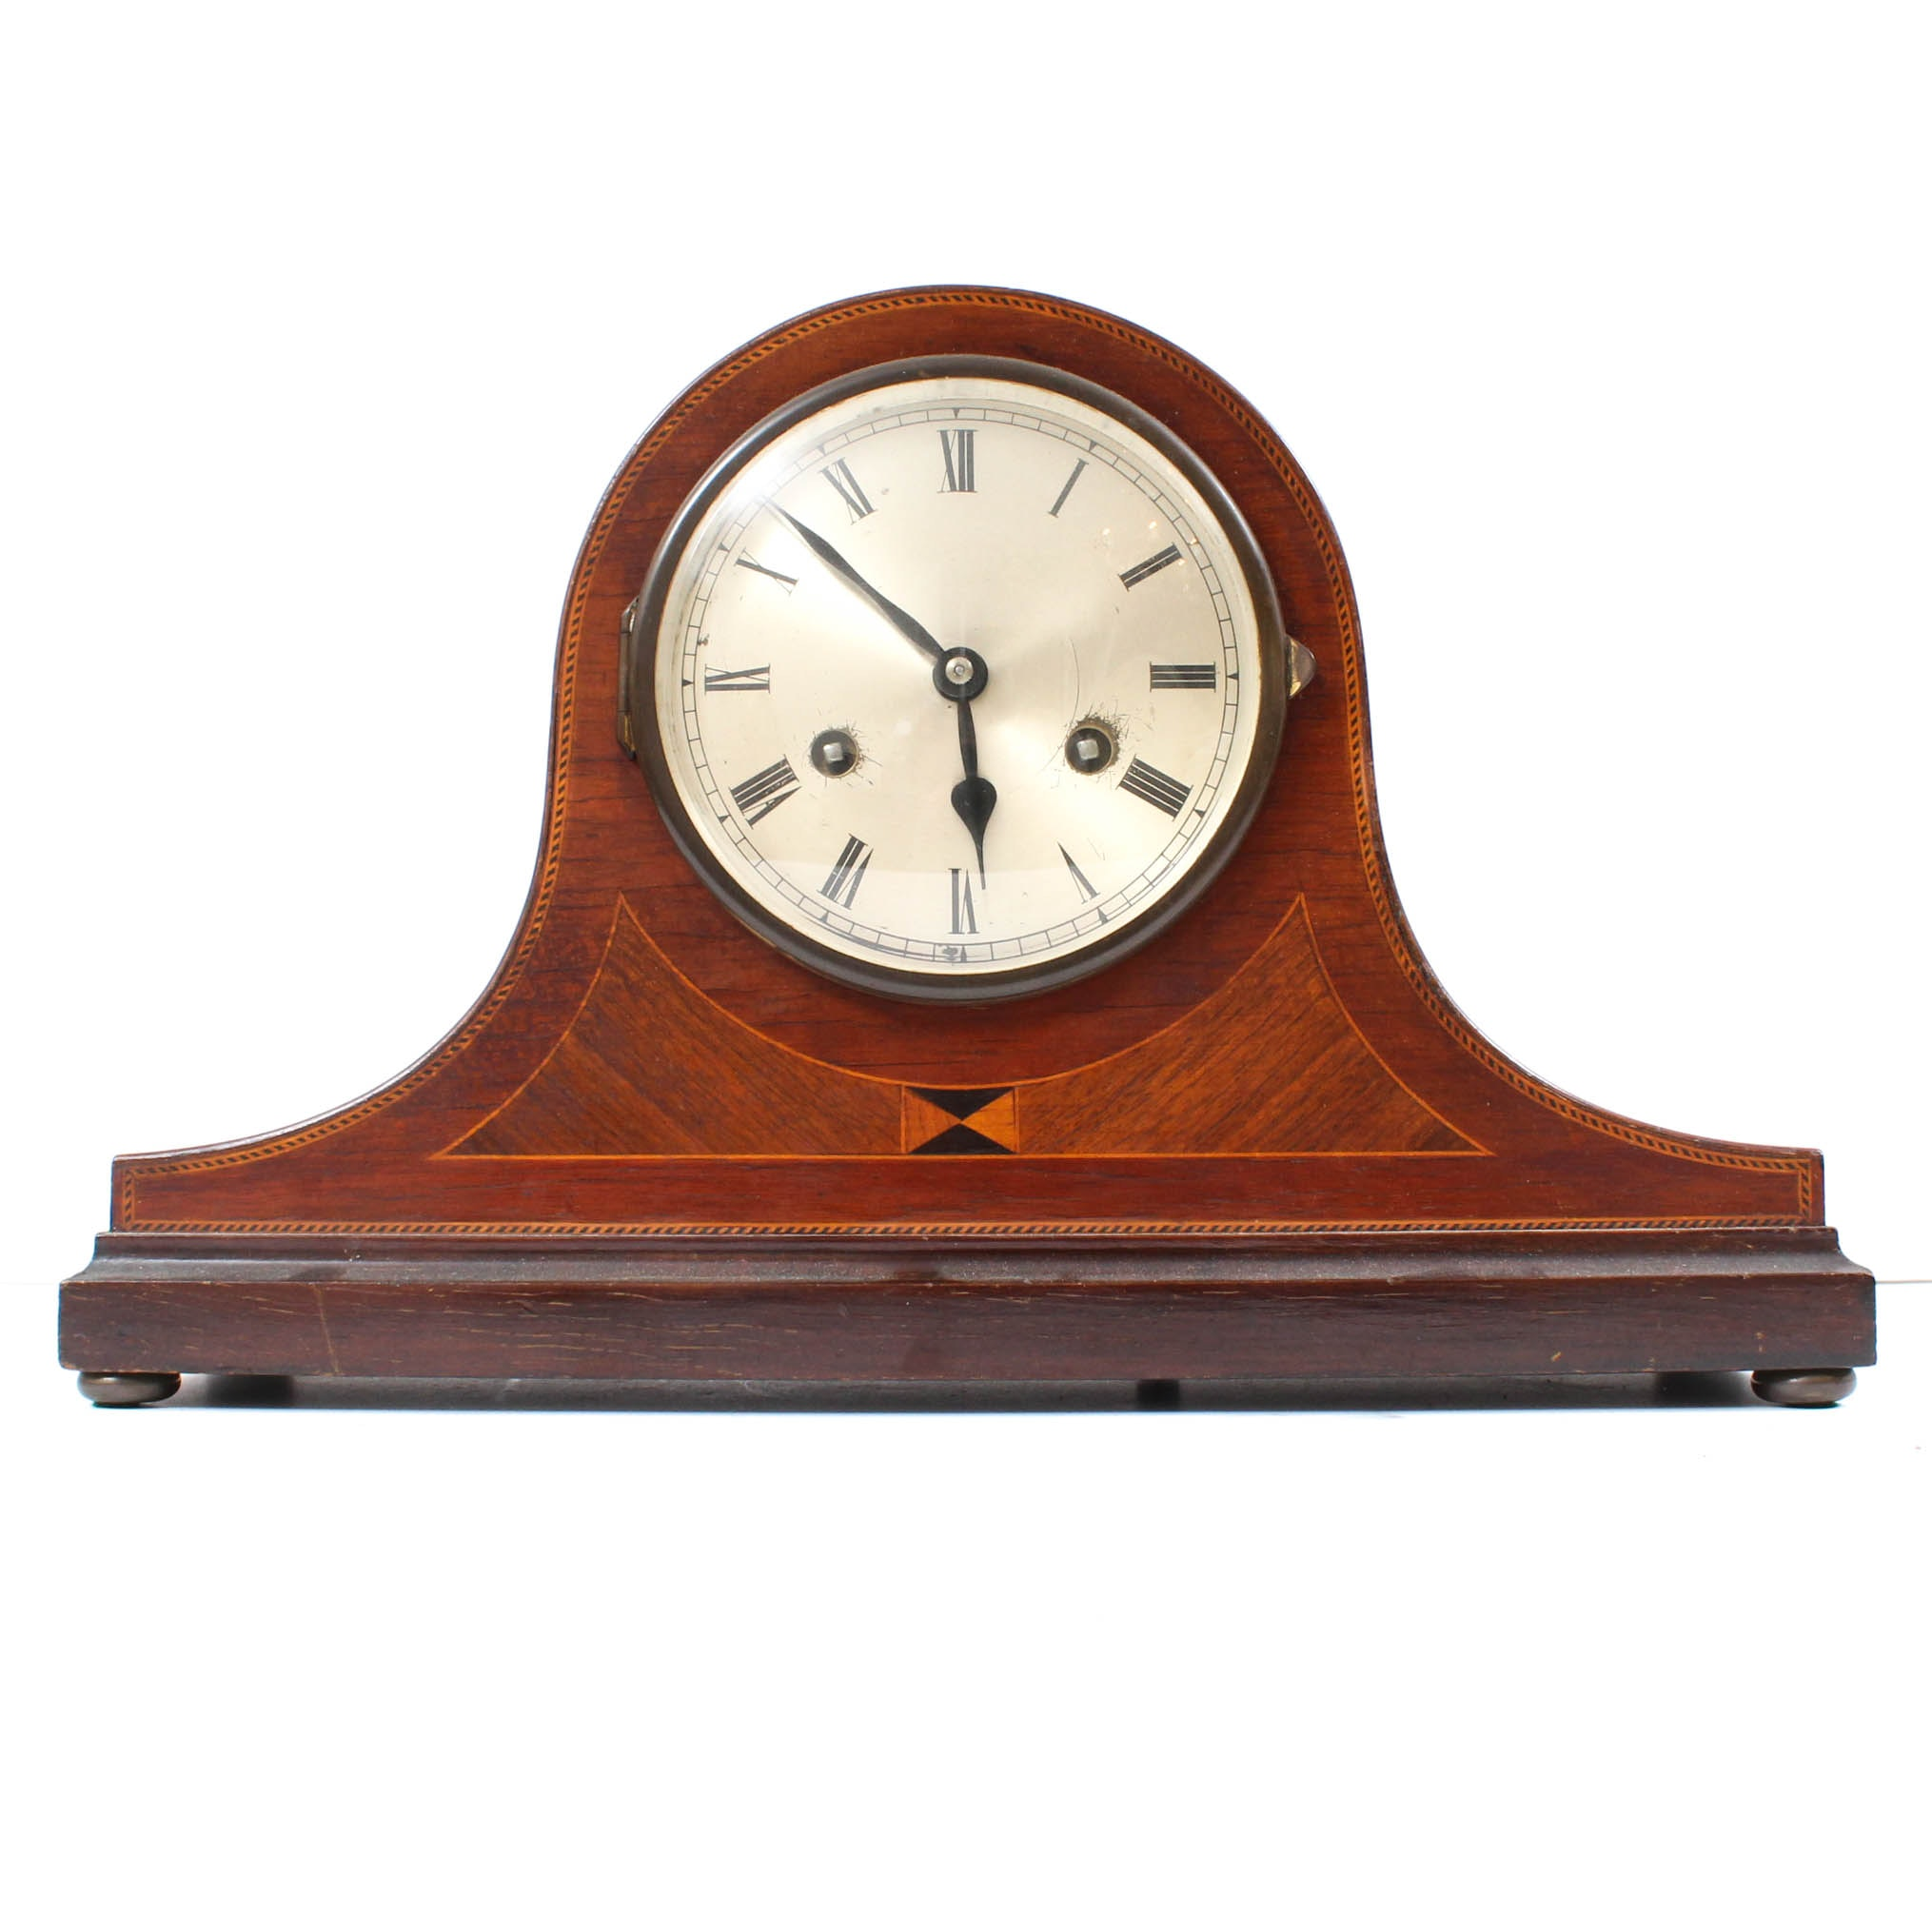 Mahogany Edwardian Dome Top Mantle Clock with Jahresuhrenfabrik Works